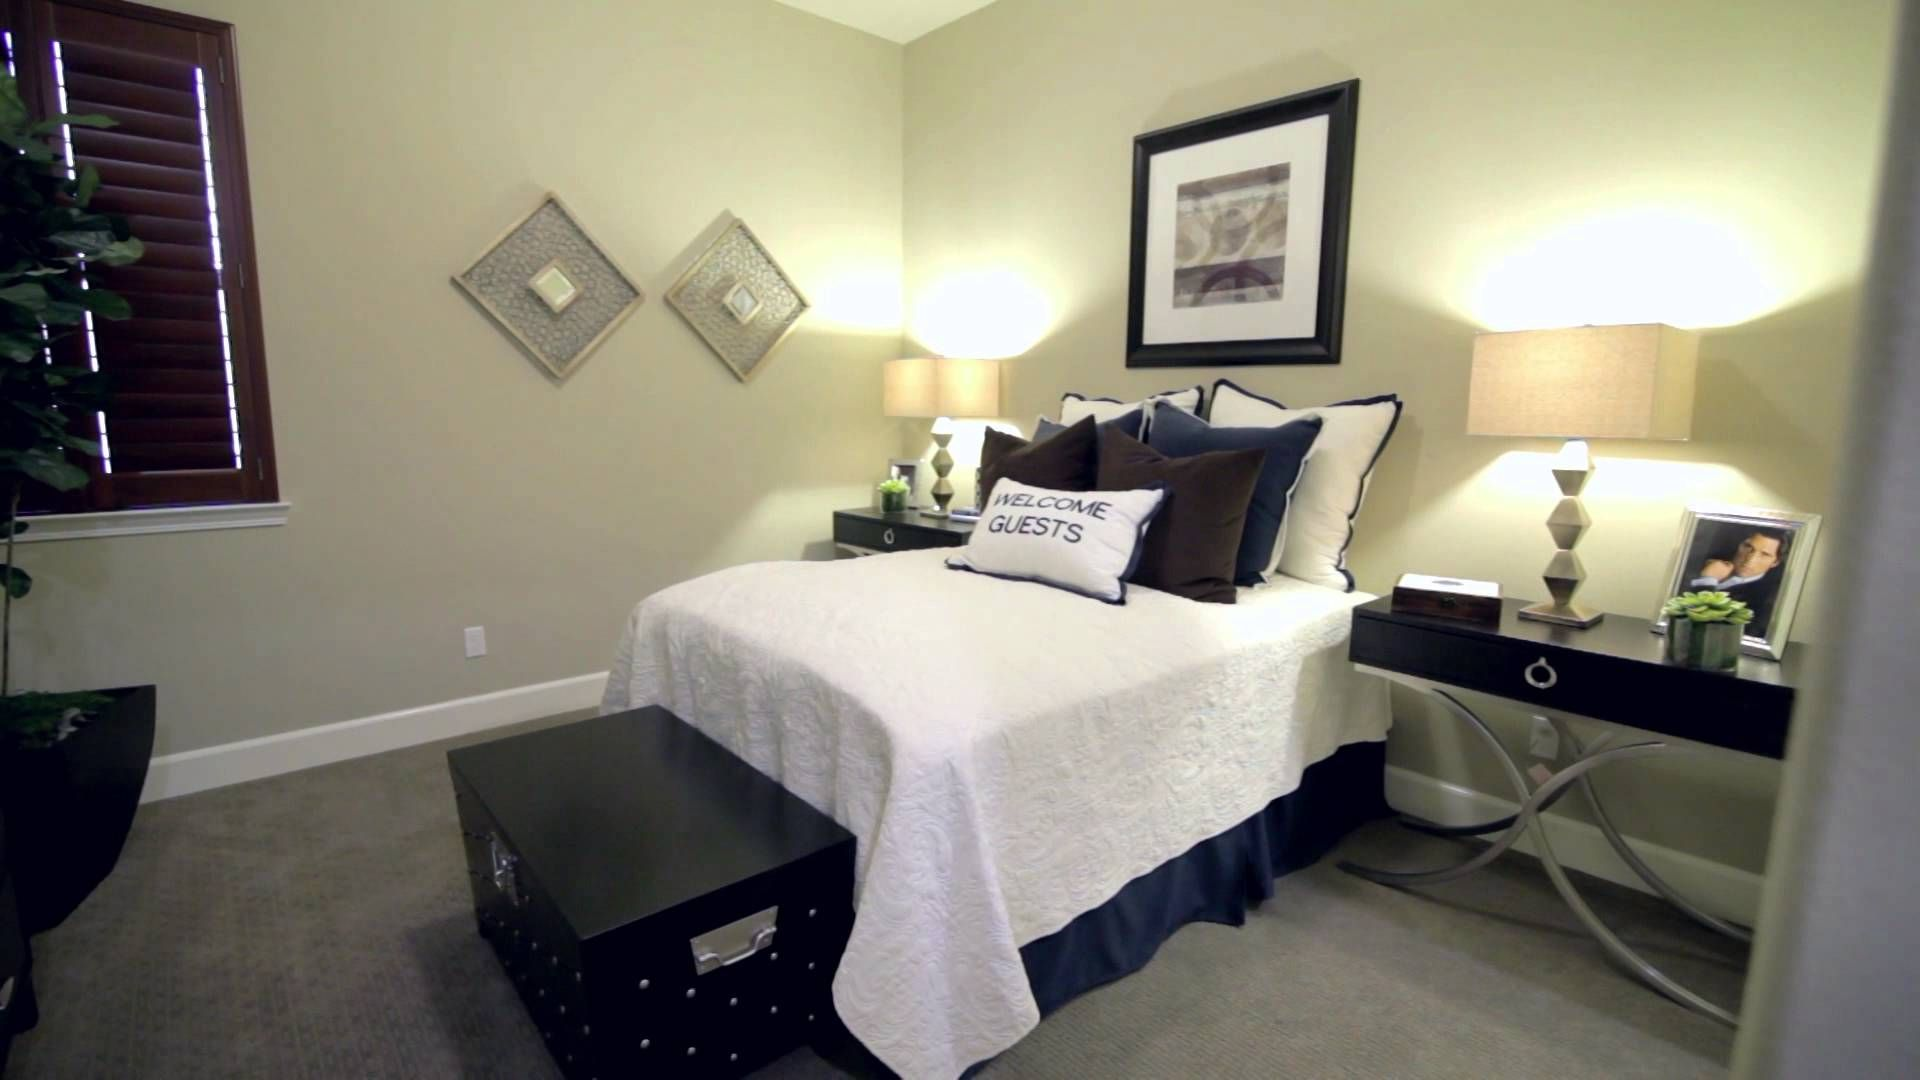 Room Residence 1 Model Home at The